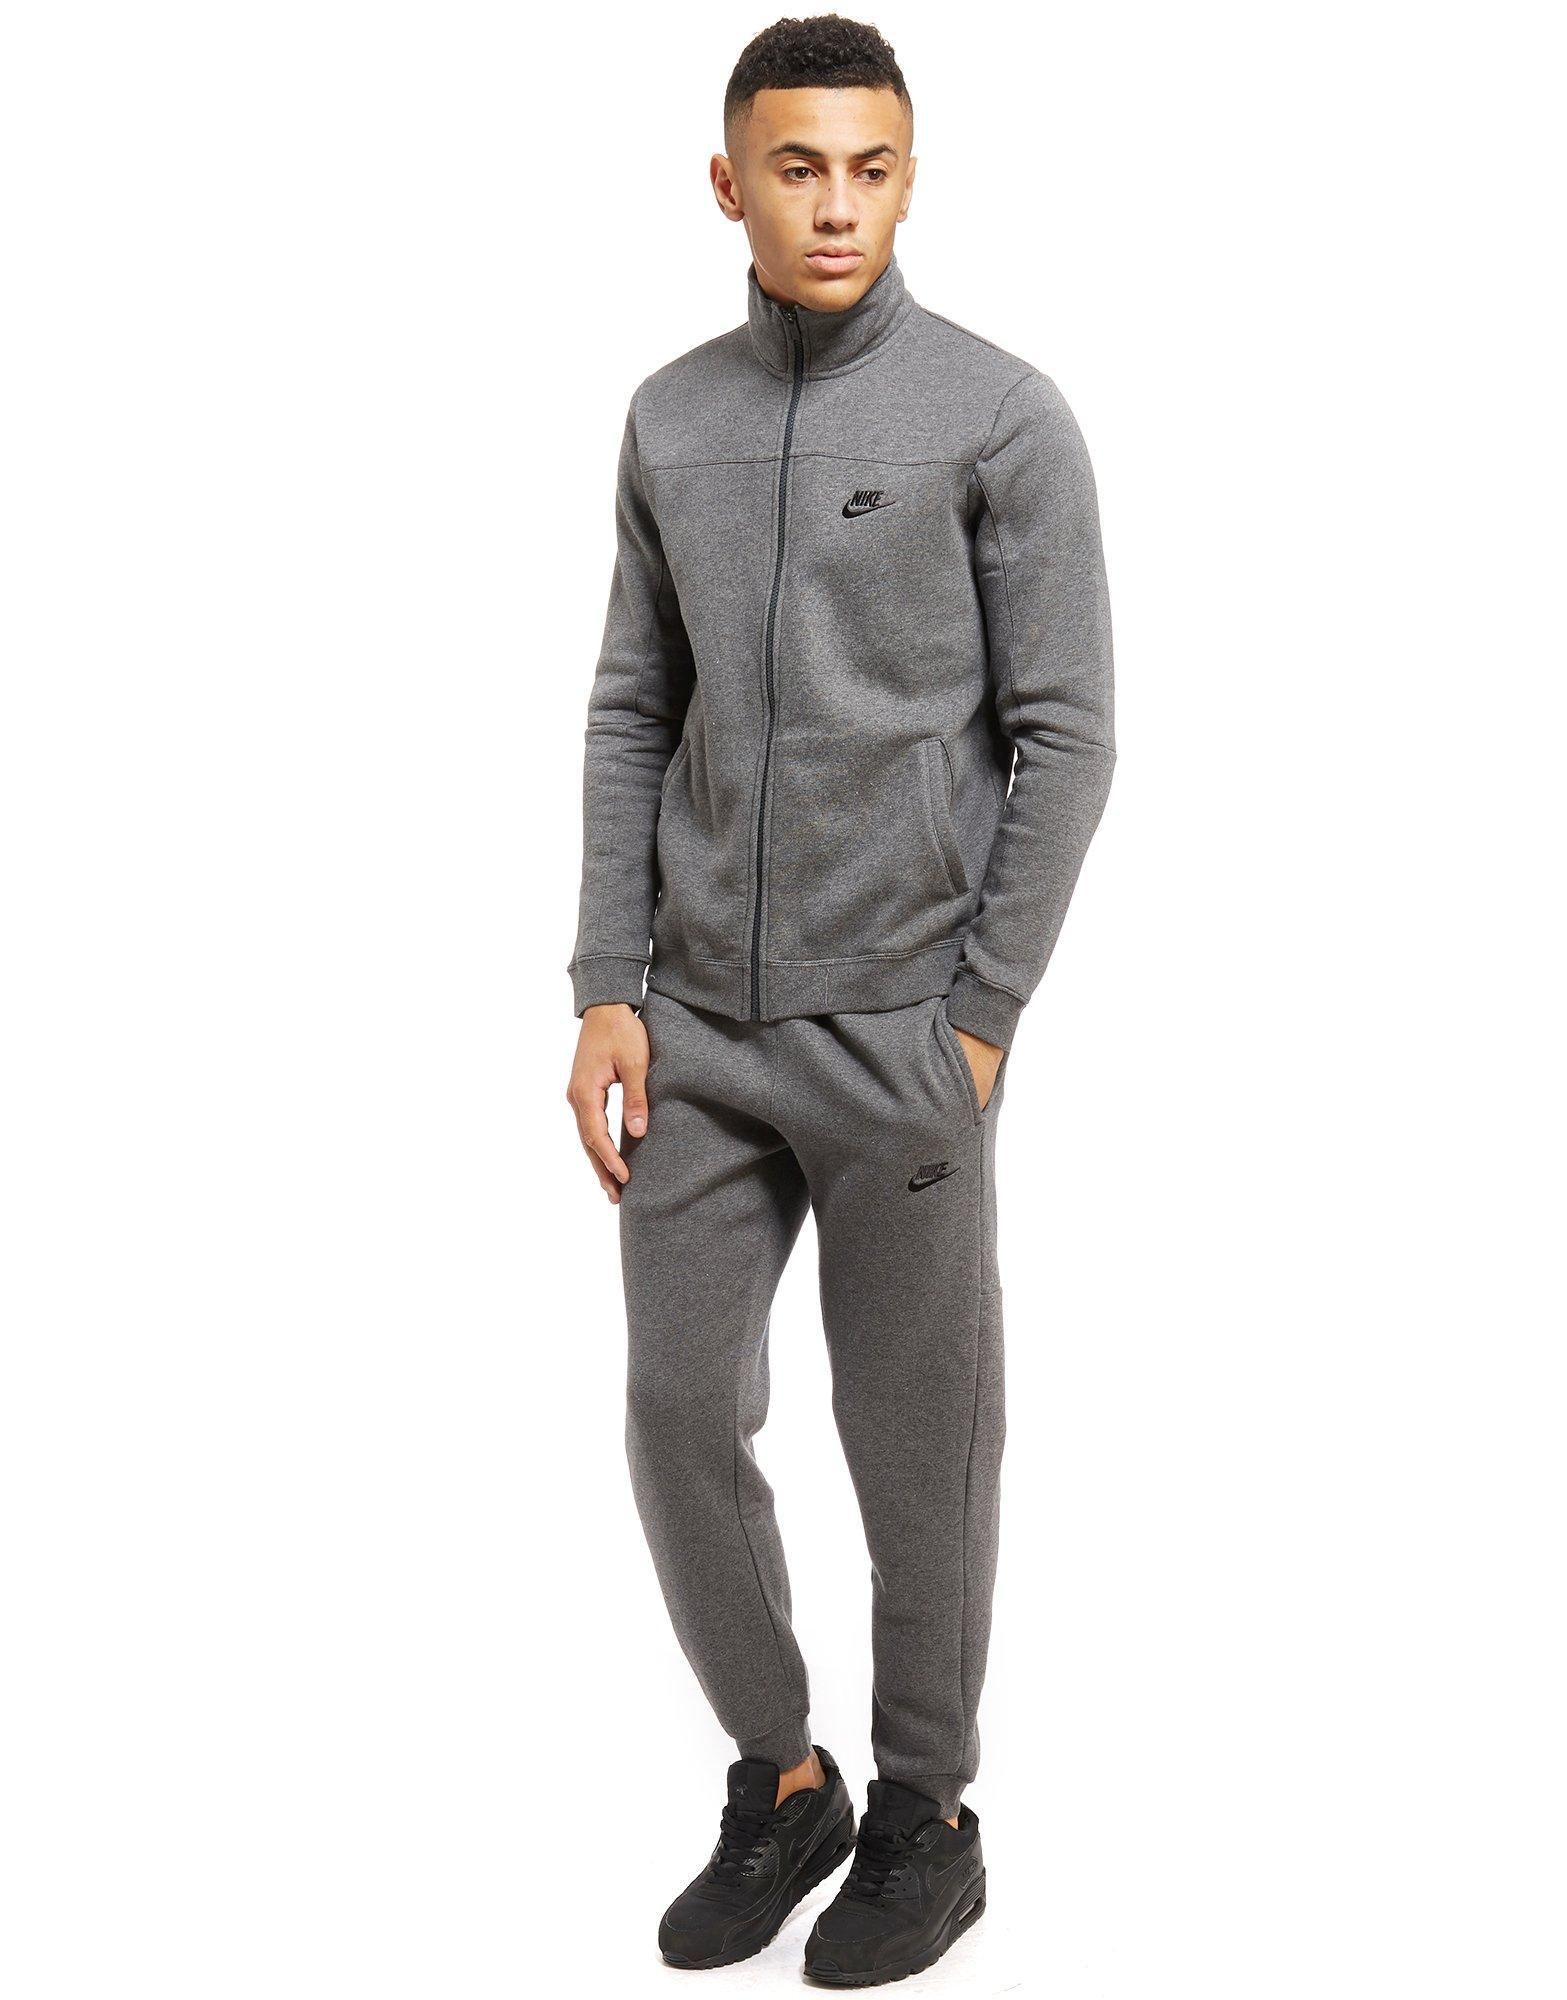 Nike Cotton Season 2 Tracksuit In Gray For Men Lyst